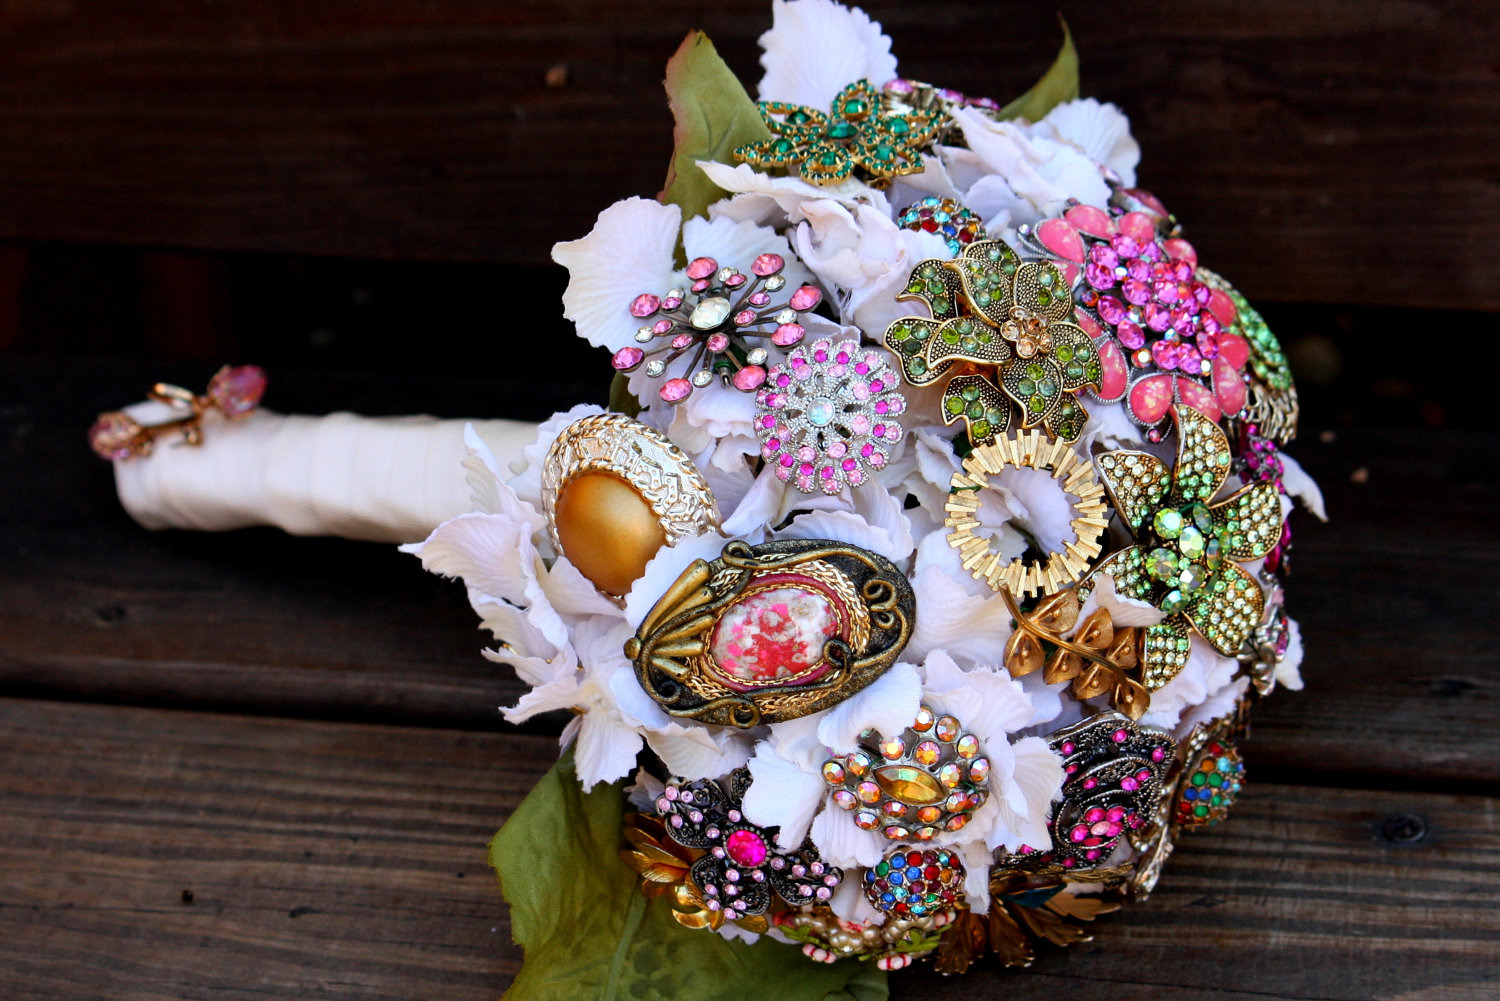 Brooch bridal bouquets vintage wedding ideas 1 for Bridal flower bouquets ideas